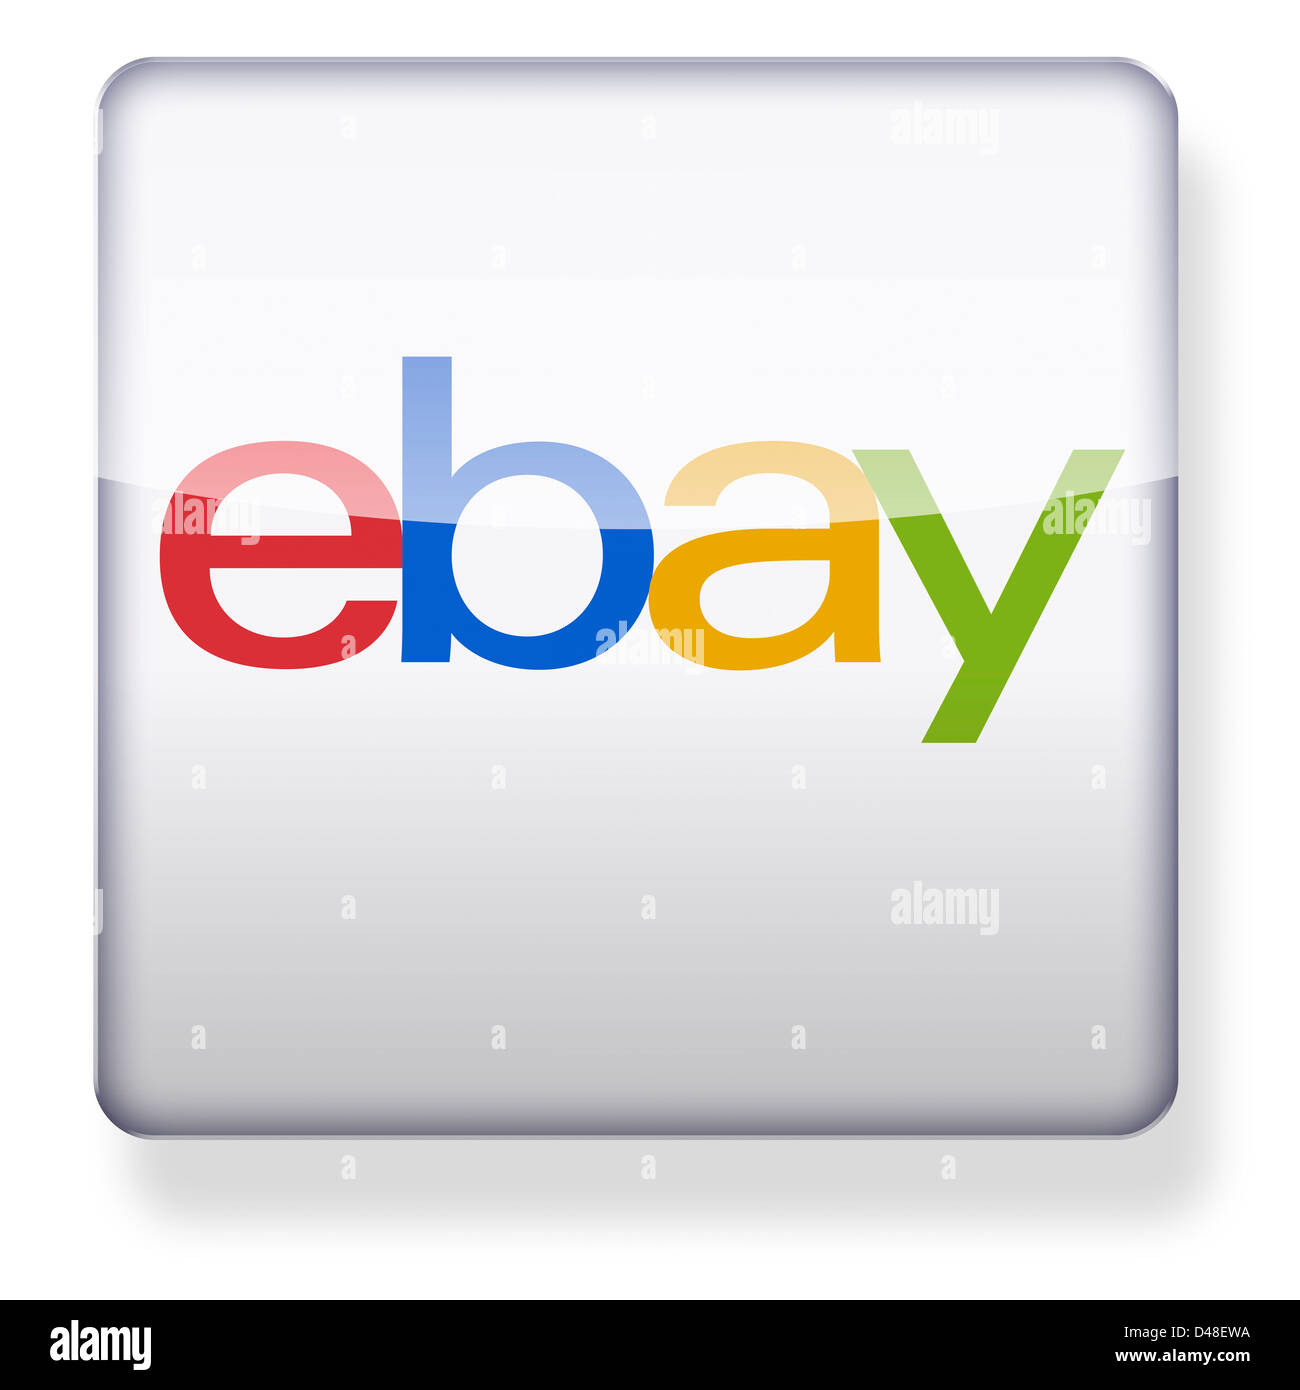 Ebay Logo As An App Icon Clipping Path Included Stock Photo Alamy